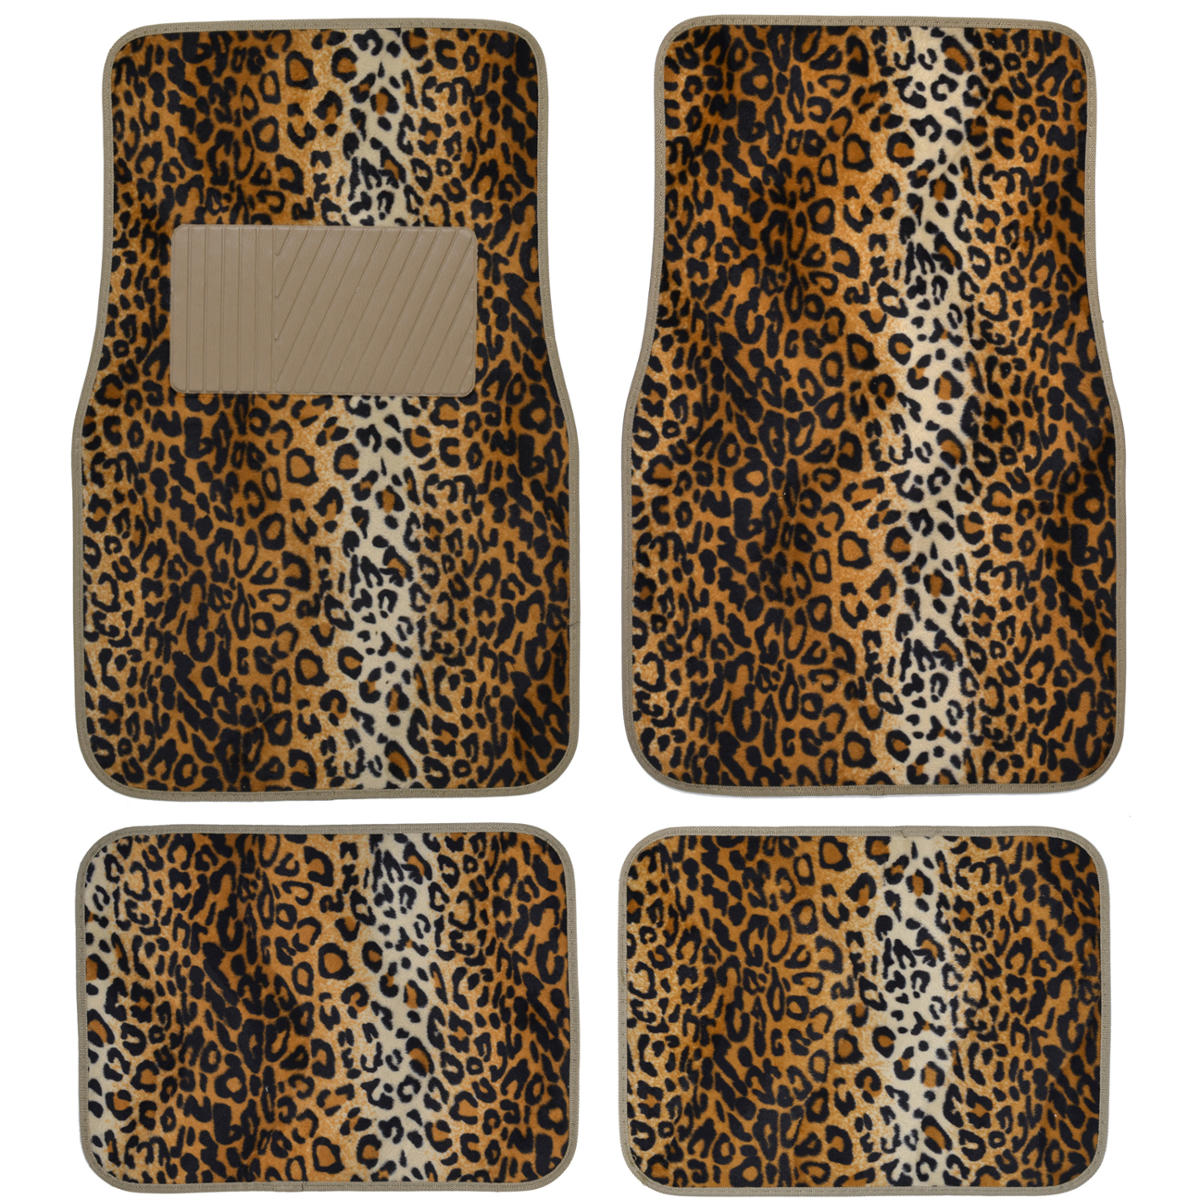 New Superior Leopard Design Car Auto Carpet 4 Piece